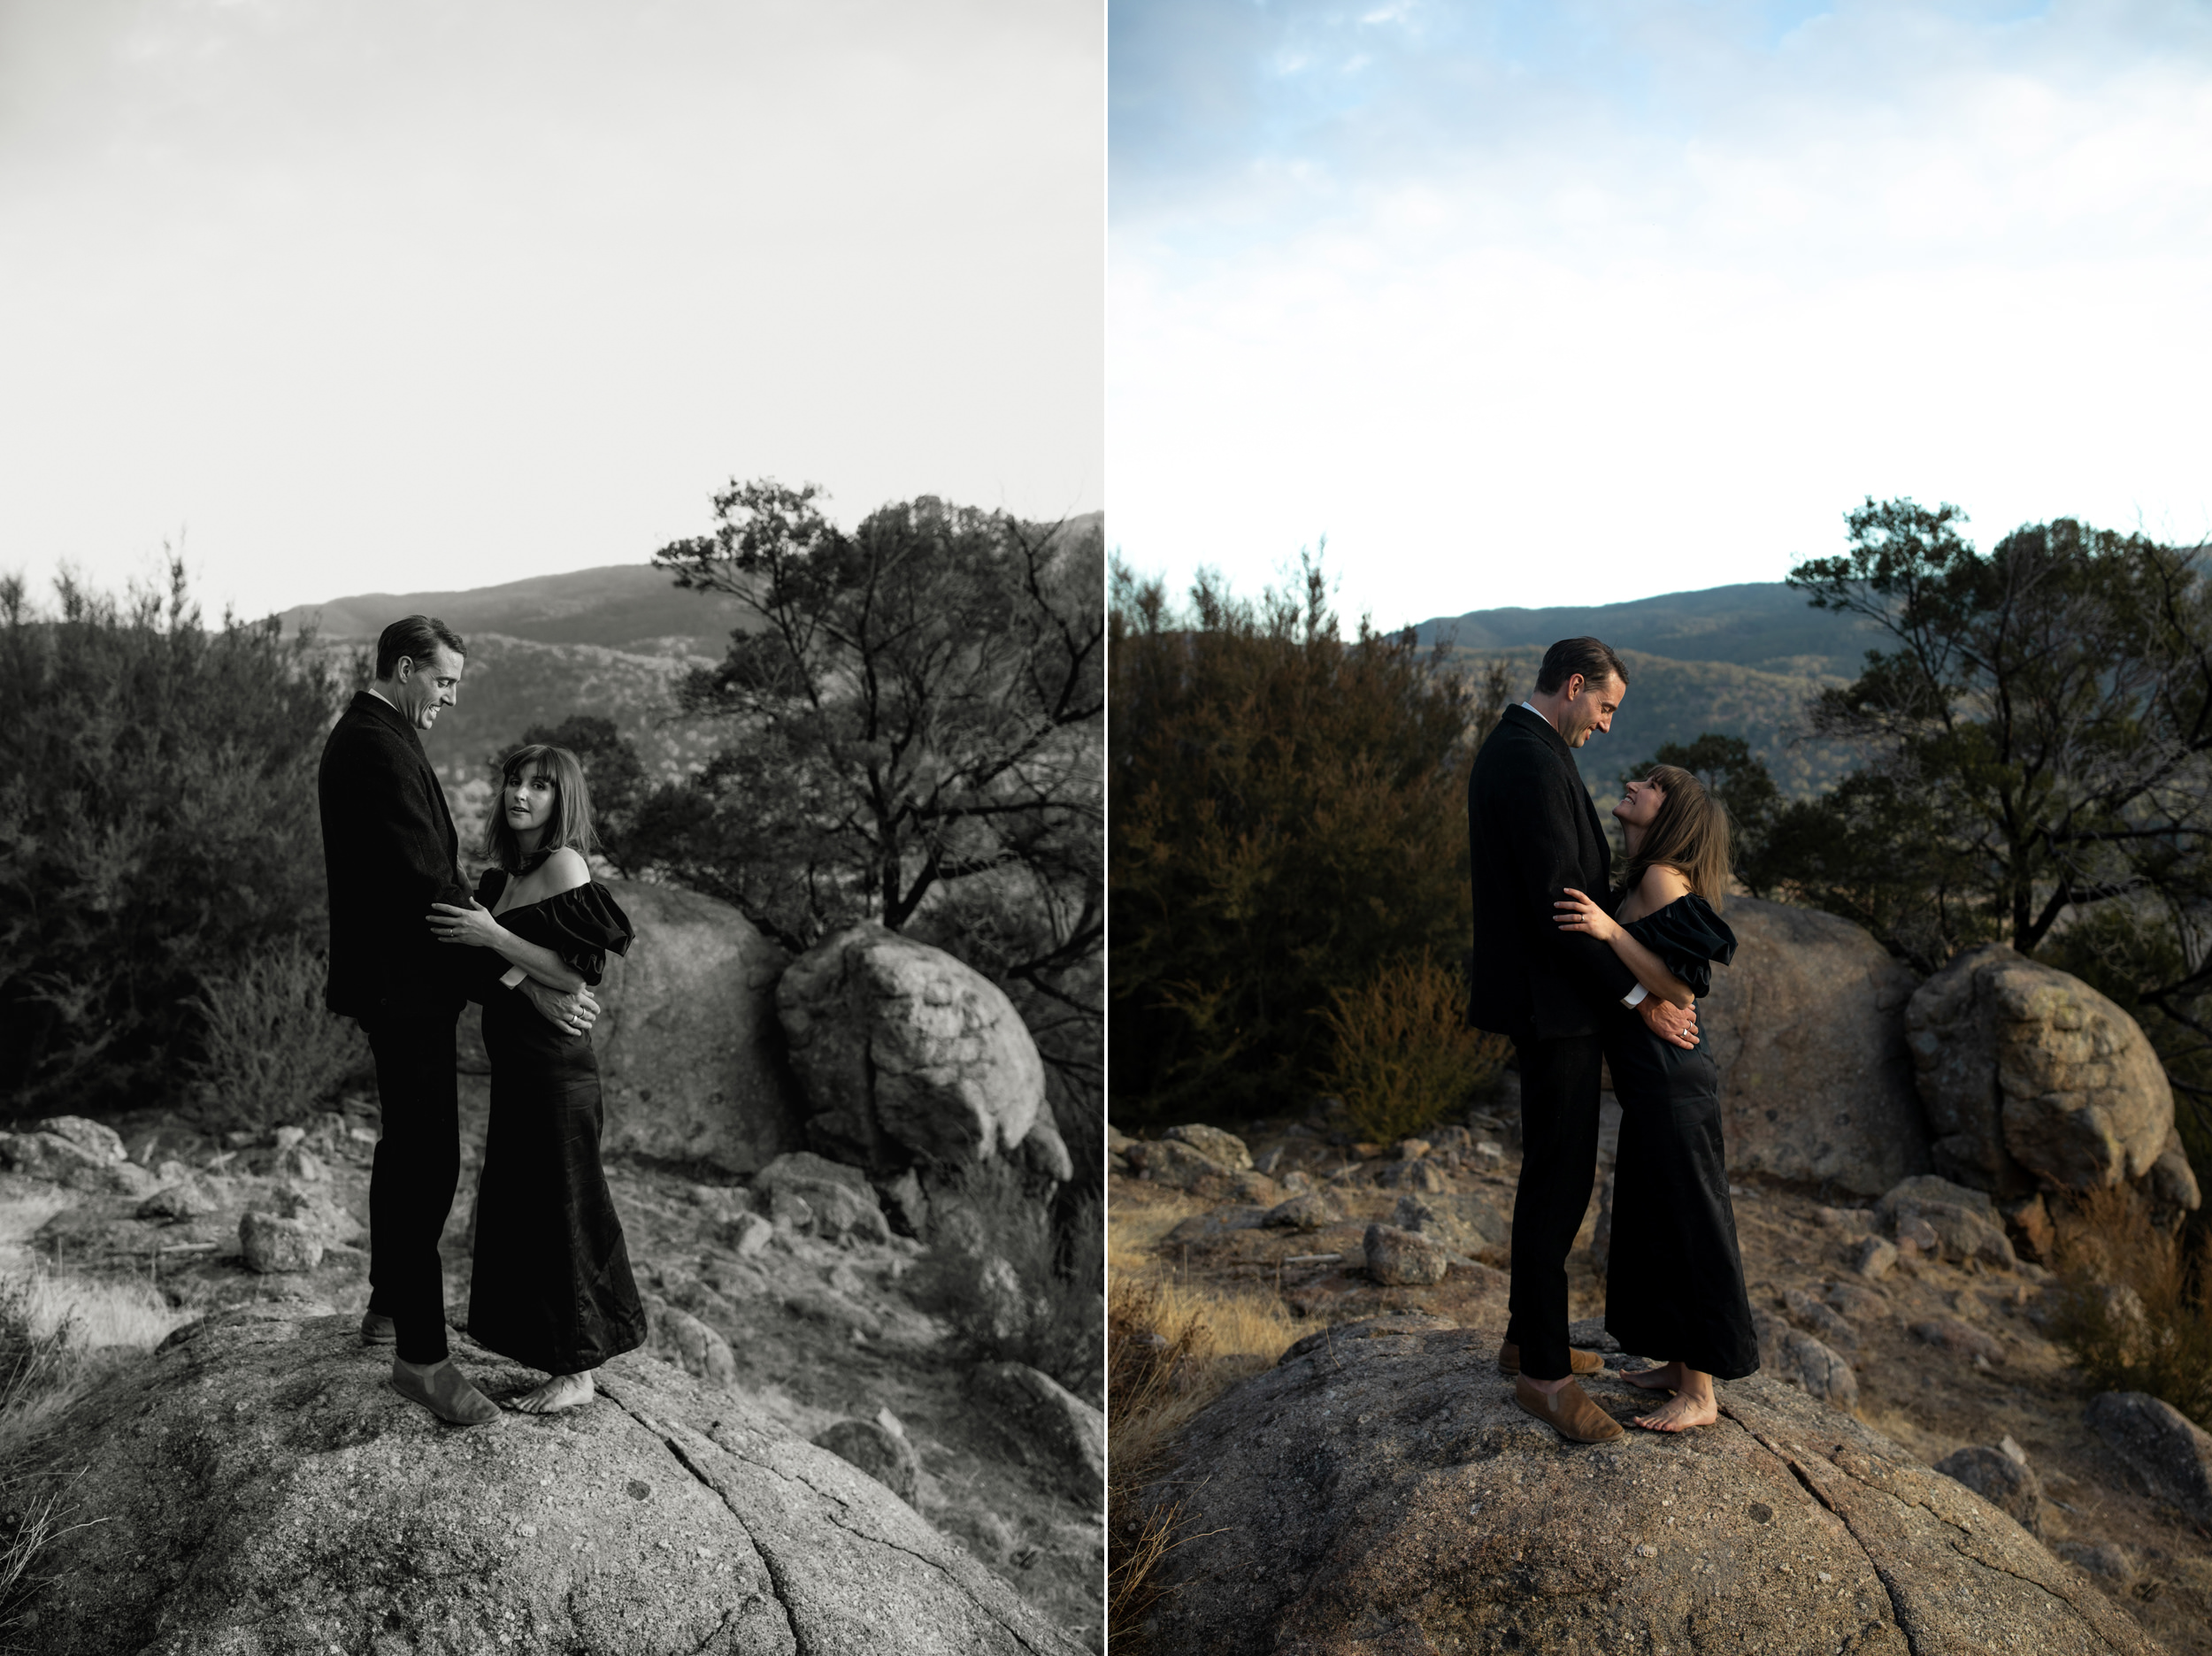 I-Got-You-Babe-Weddings-Claire-Dave-Trawol-VIC-Country-Property-Wedding230.JPG